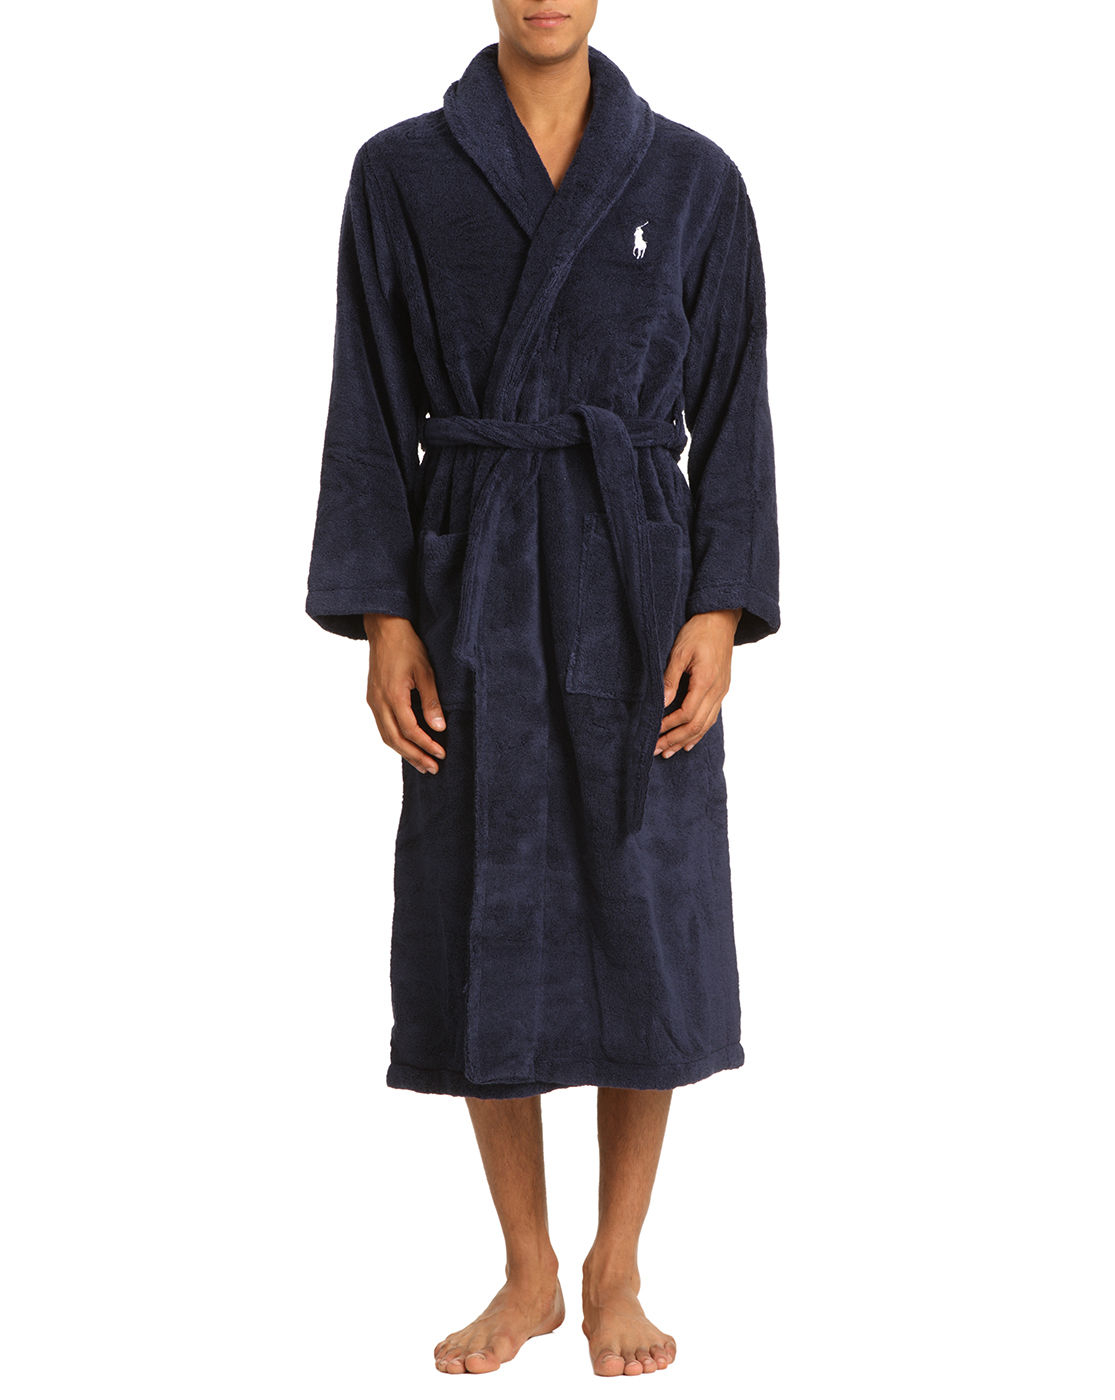 polo ralph lauren dark blue bath robe shawl collar in blue for men lyst. Black Bedroom Furniture Sets. Home Design Ideas